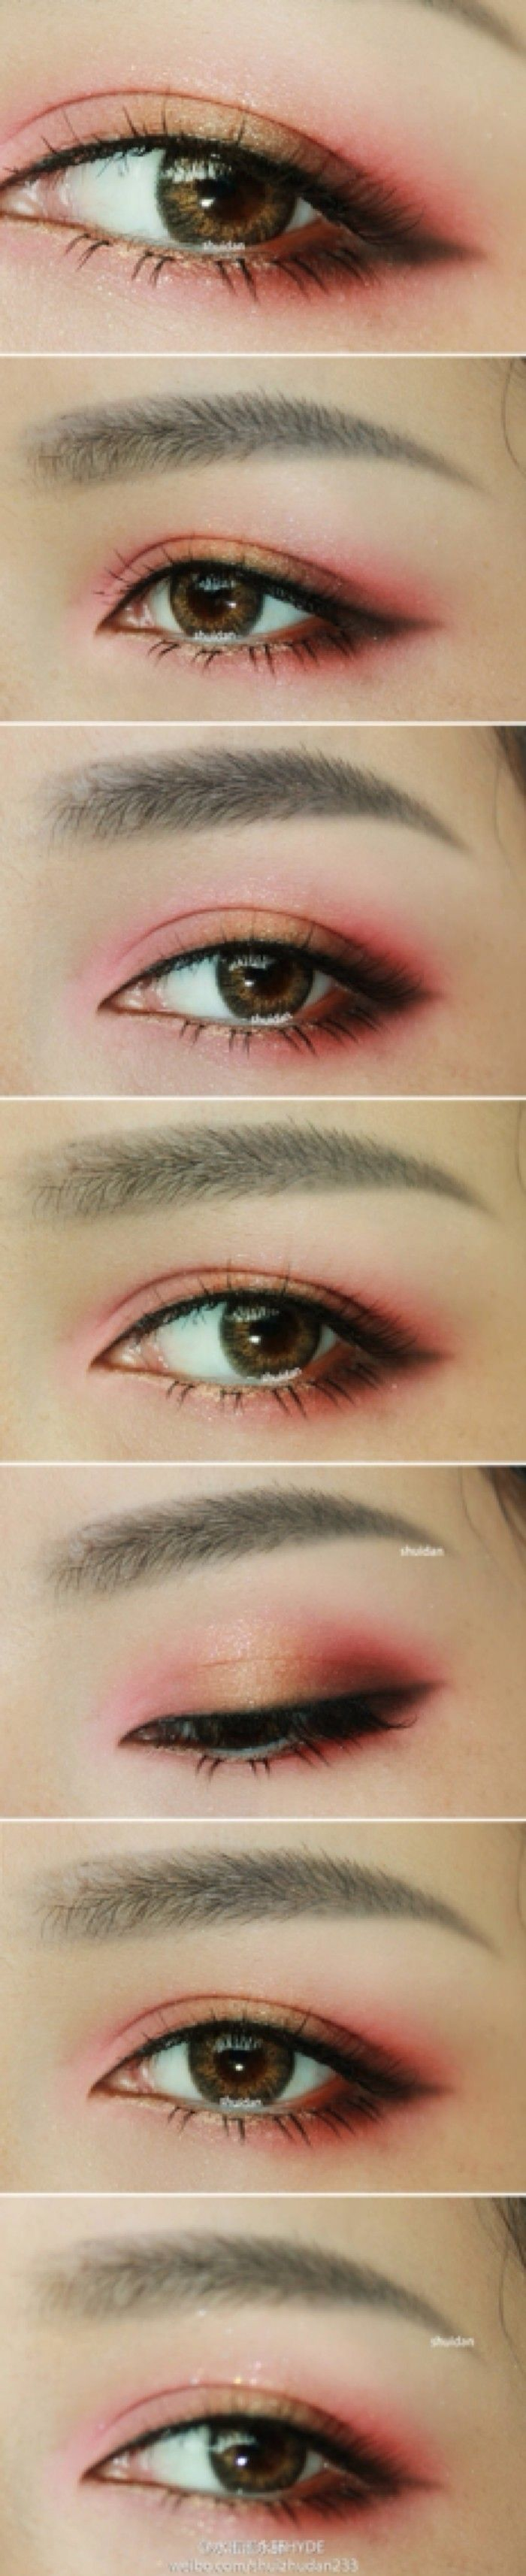 love the pink around the eye. feels very nocturnal woo